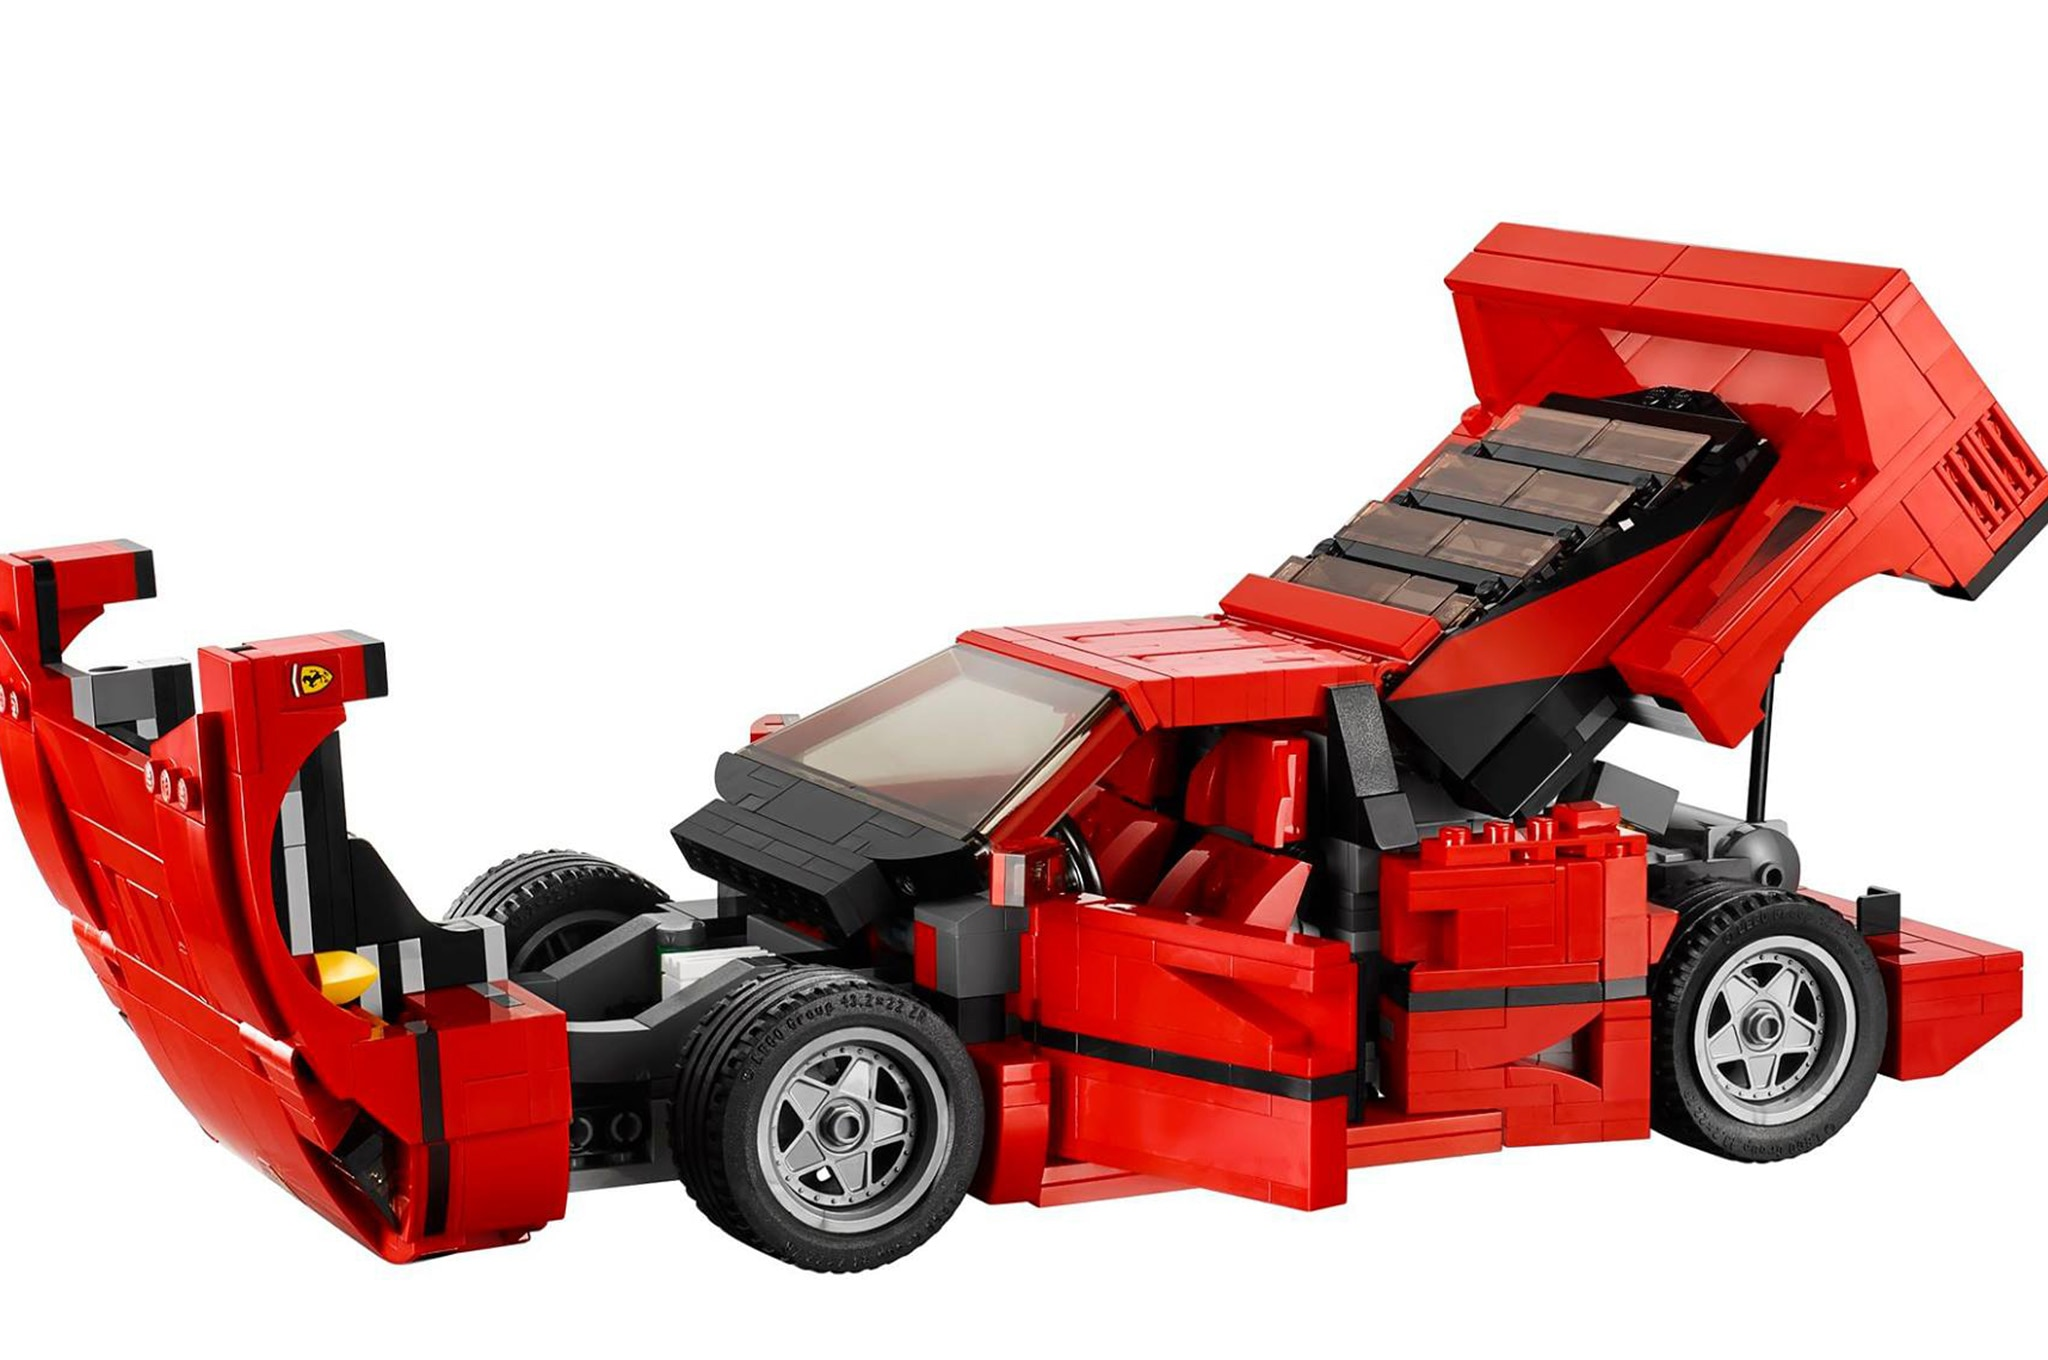 Lego Releases Detailed Ferrari F40 Creator Set